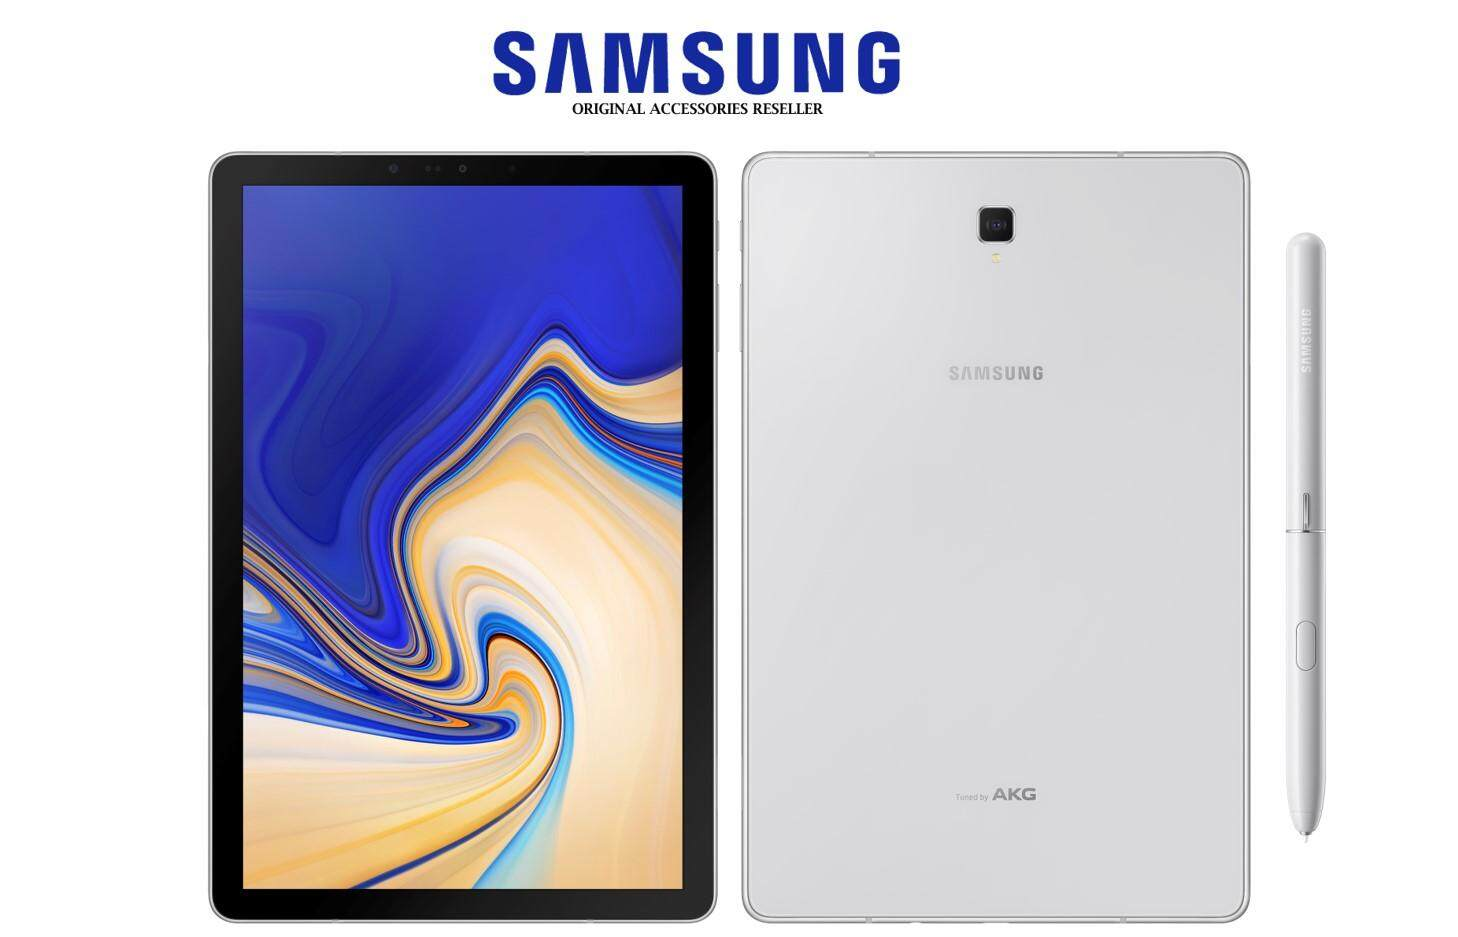 Samsung Mobiles Tablets Price In Malaysia Best P355 Galaxy Tab A 80 Original Promotion S4 2018105 Inchlte